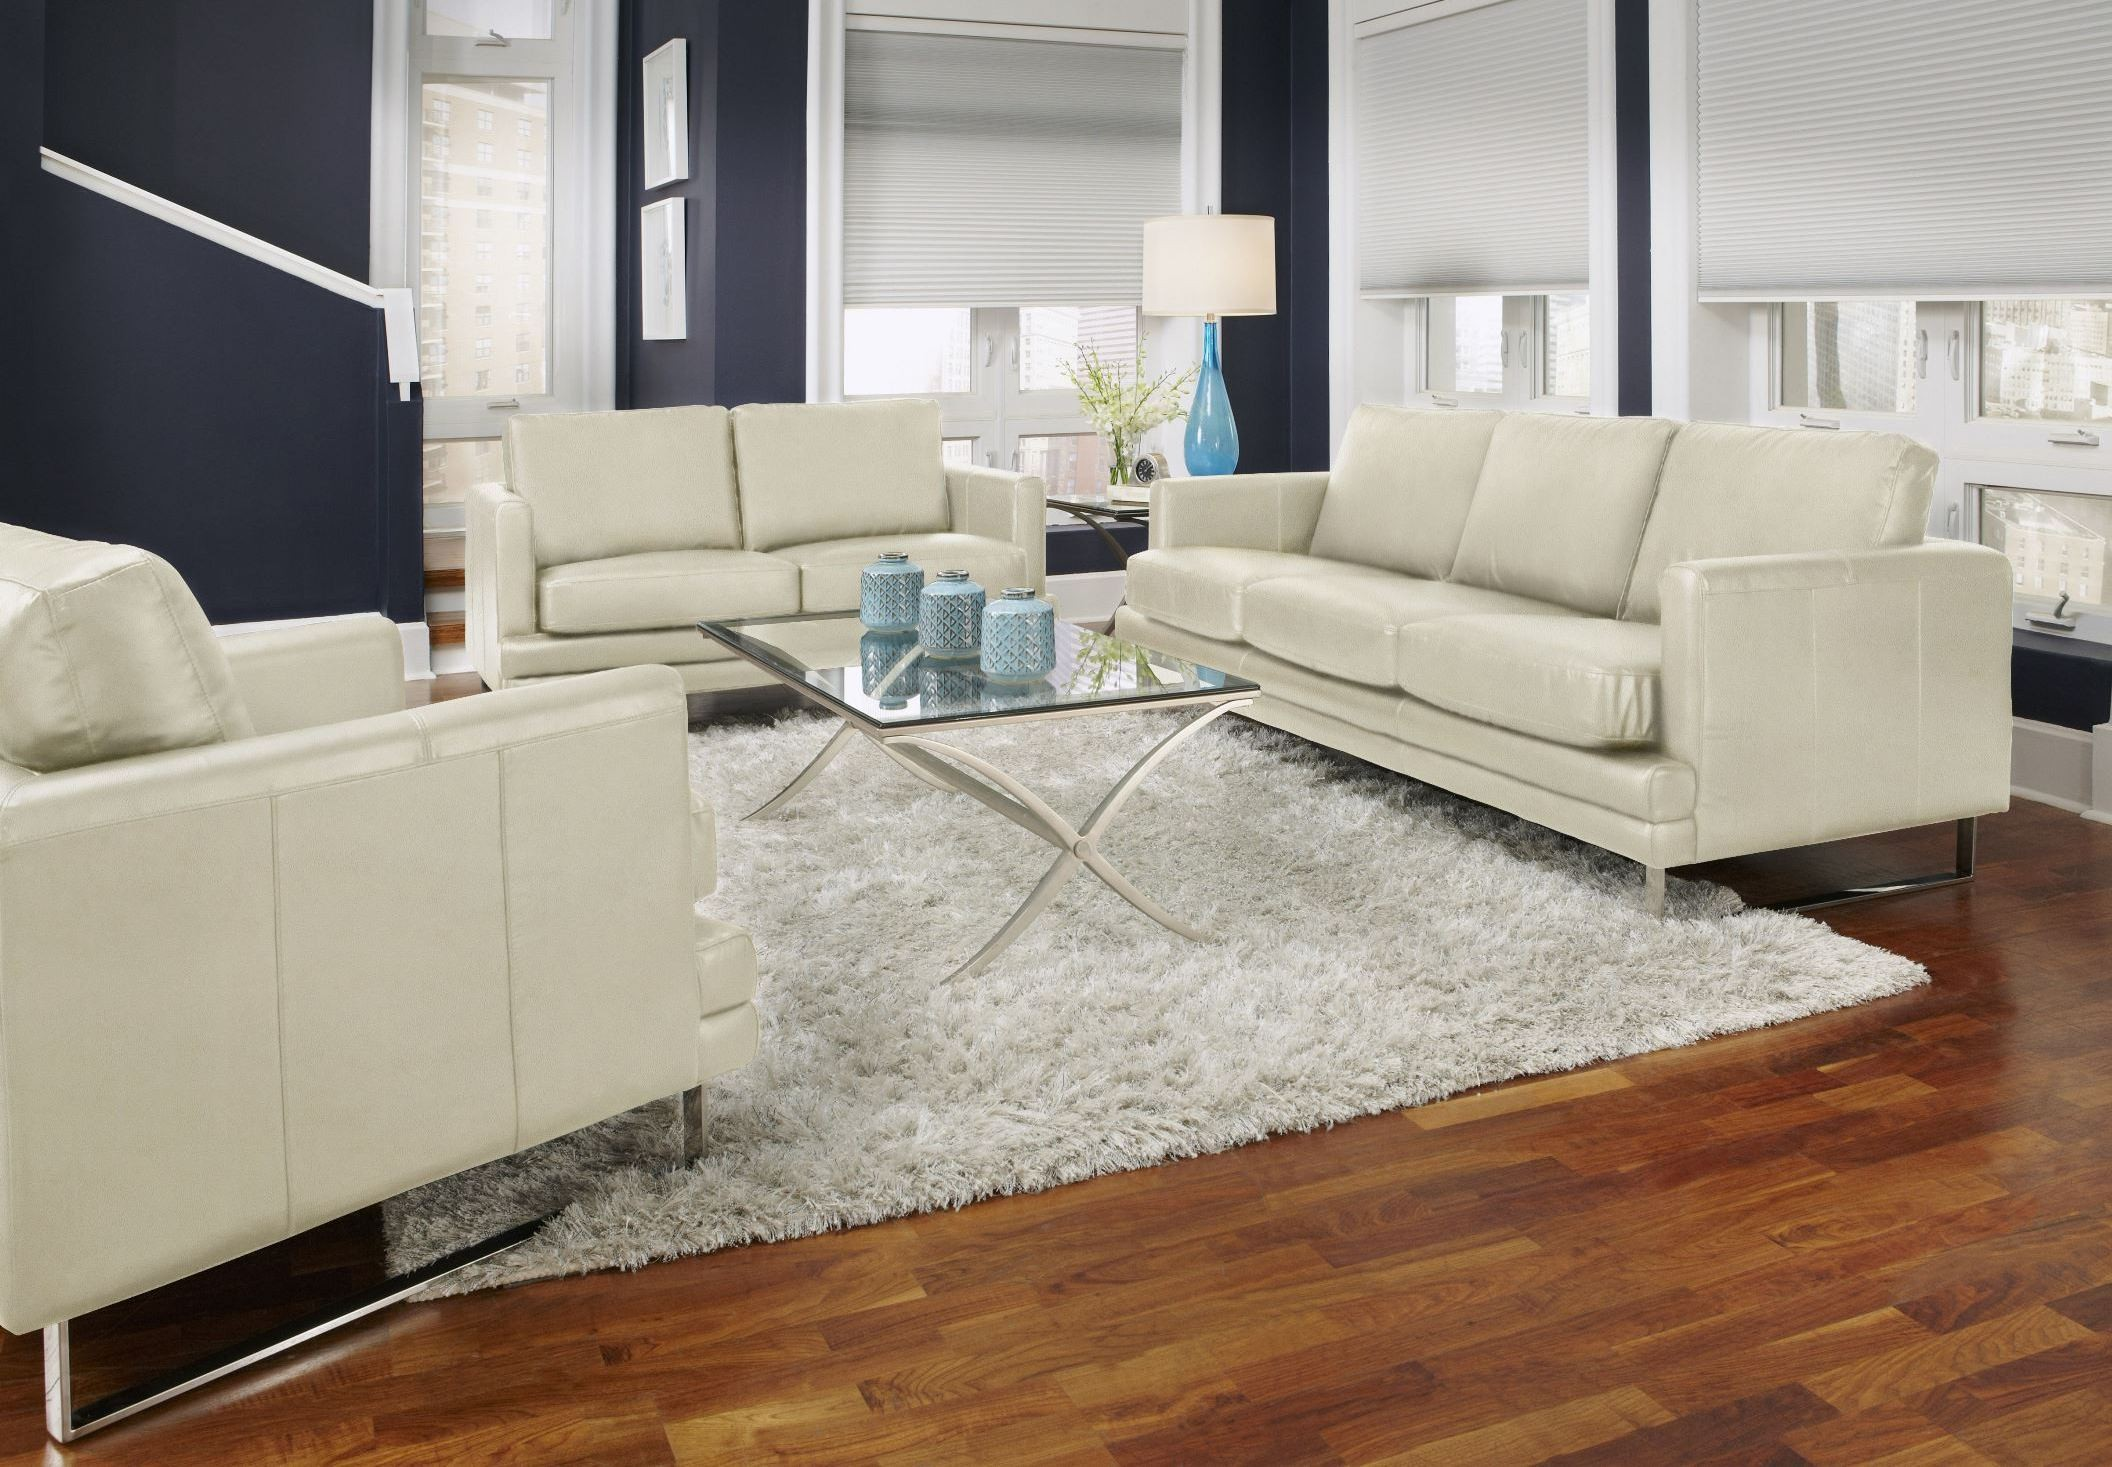 living room furniture melbourne melbourne white leather living room set from lazzaro wh 17238